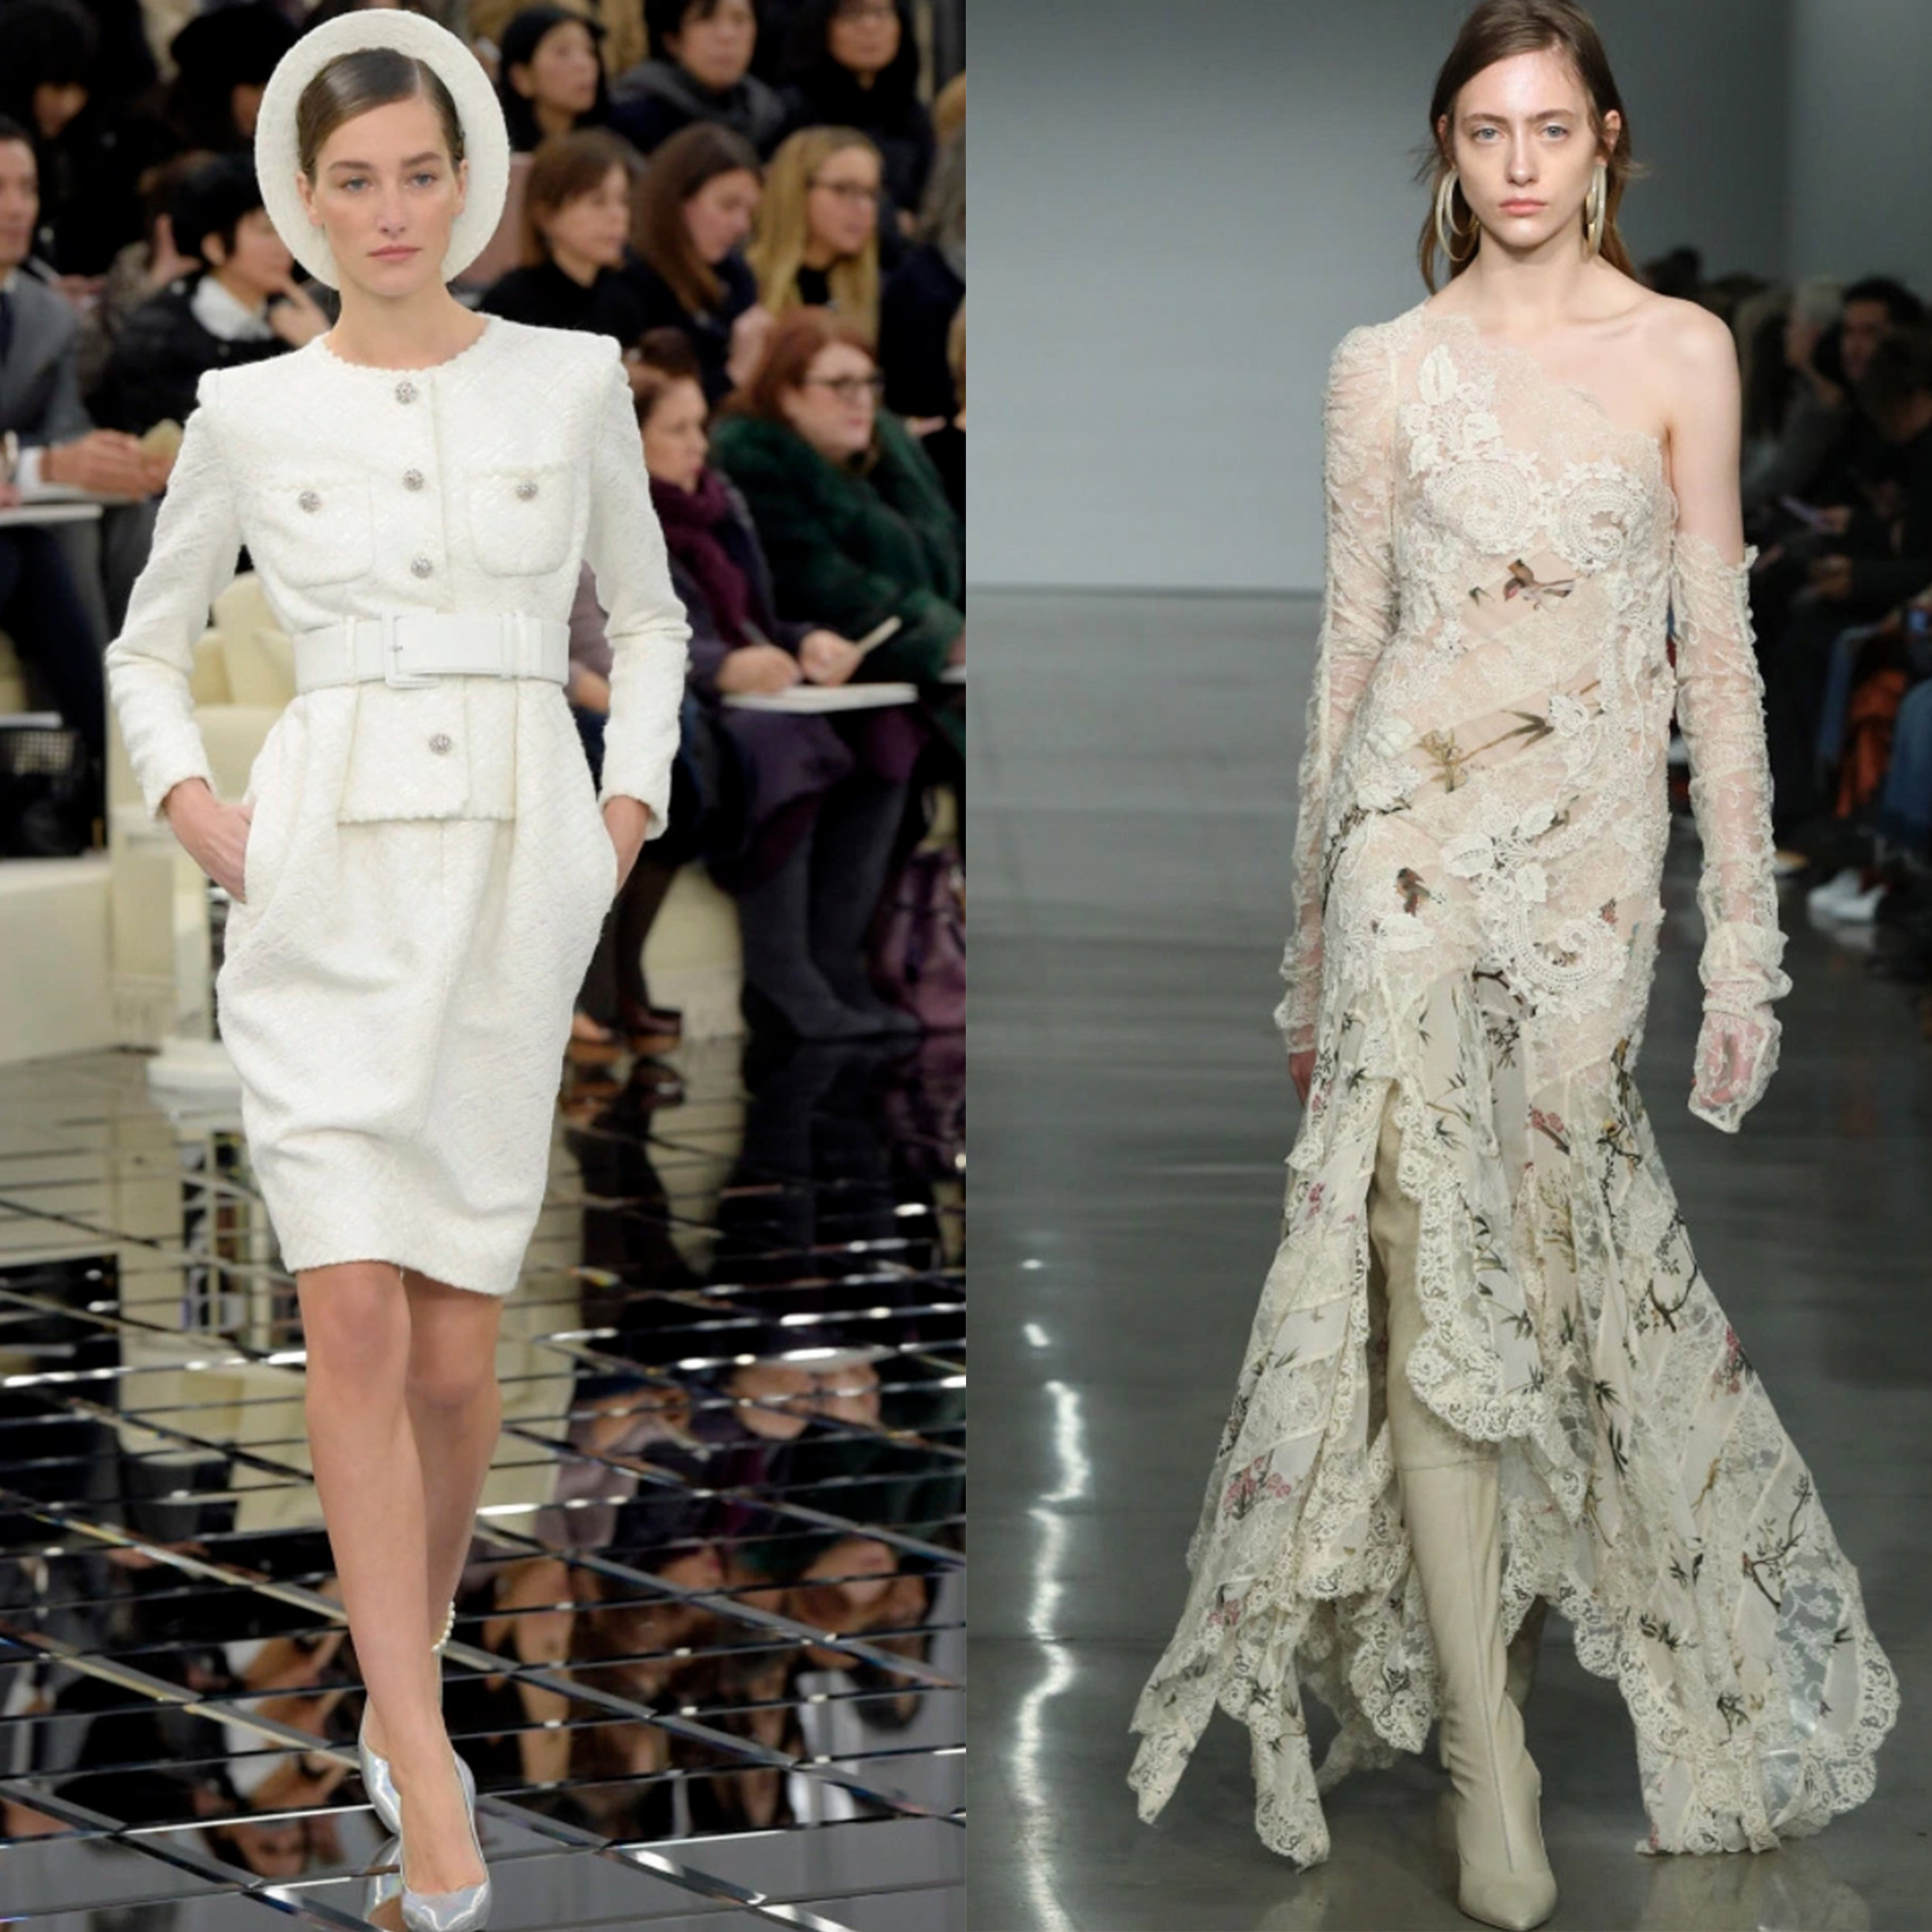 Left: Image from Chanel's Spring Couture 2017 Show. Right: Image from Zimmermann's RTW Fall 2017 Show.